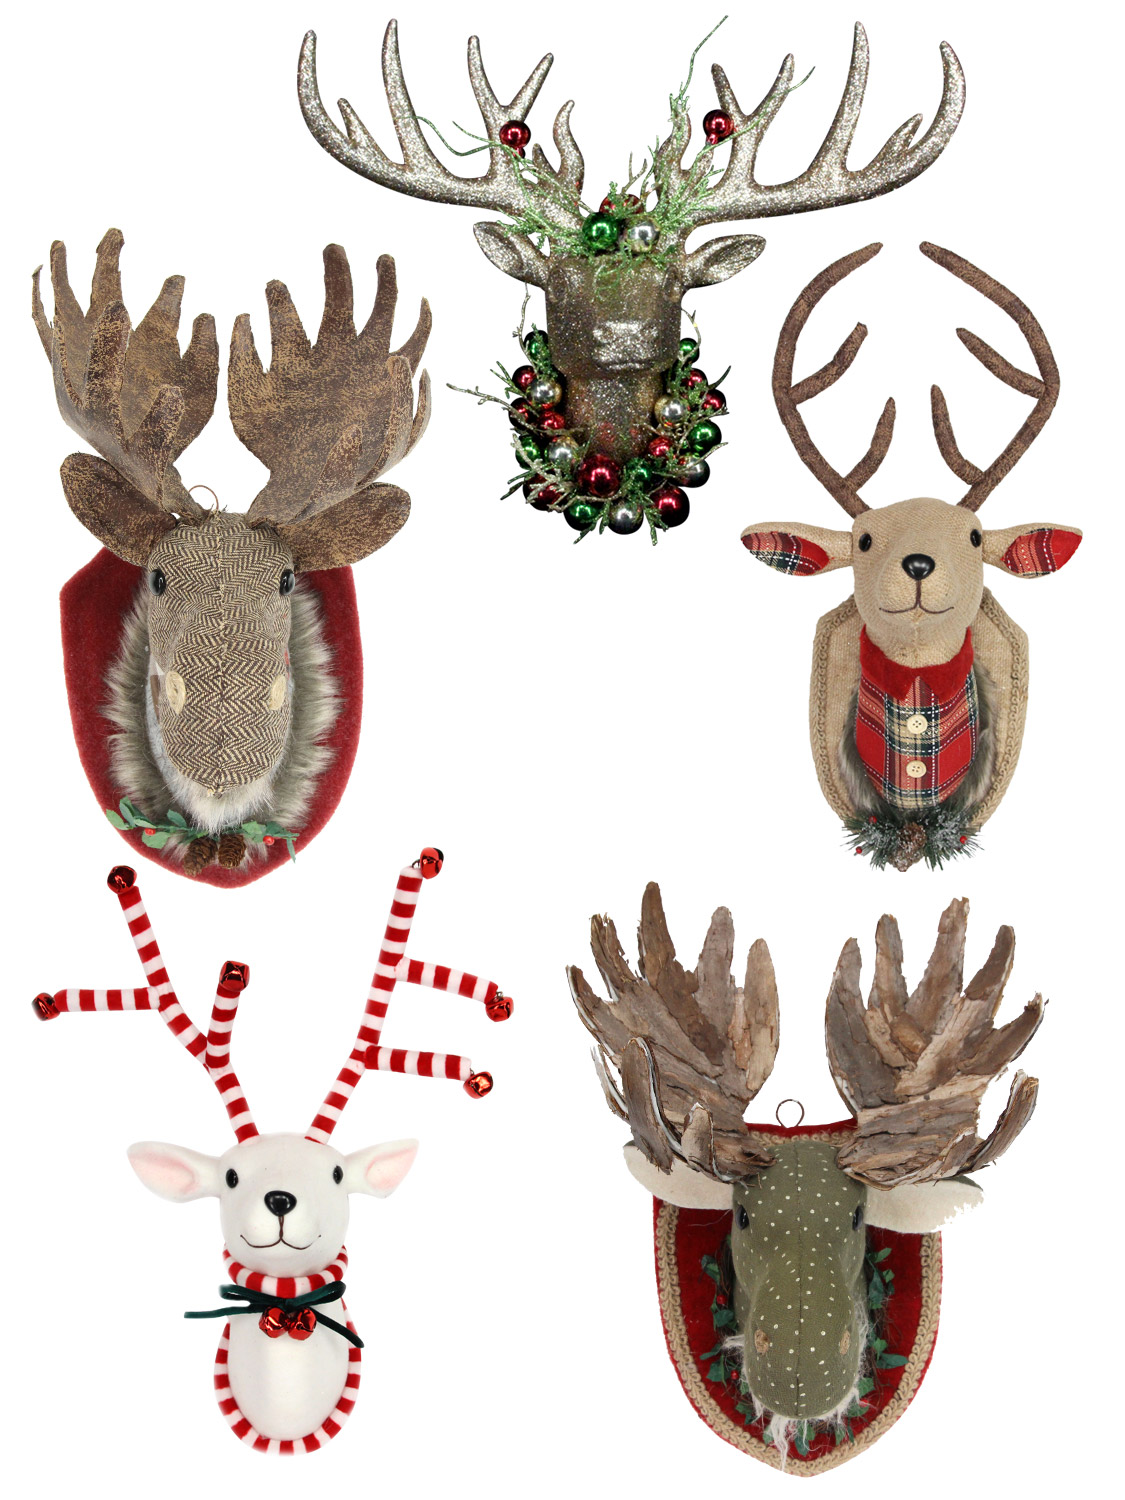 Christmas Reindeer.Details About Gisela Graham Fabric Moose Stag Christmas Reindeer Hanging Head Wall Plaque